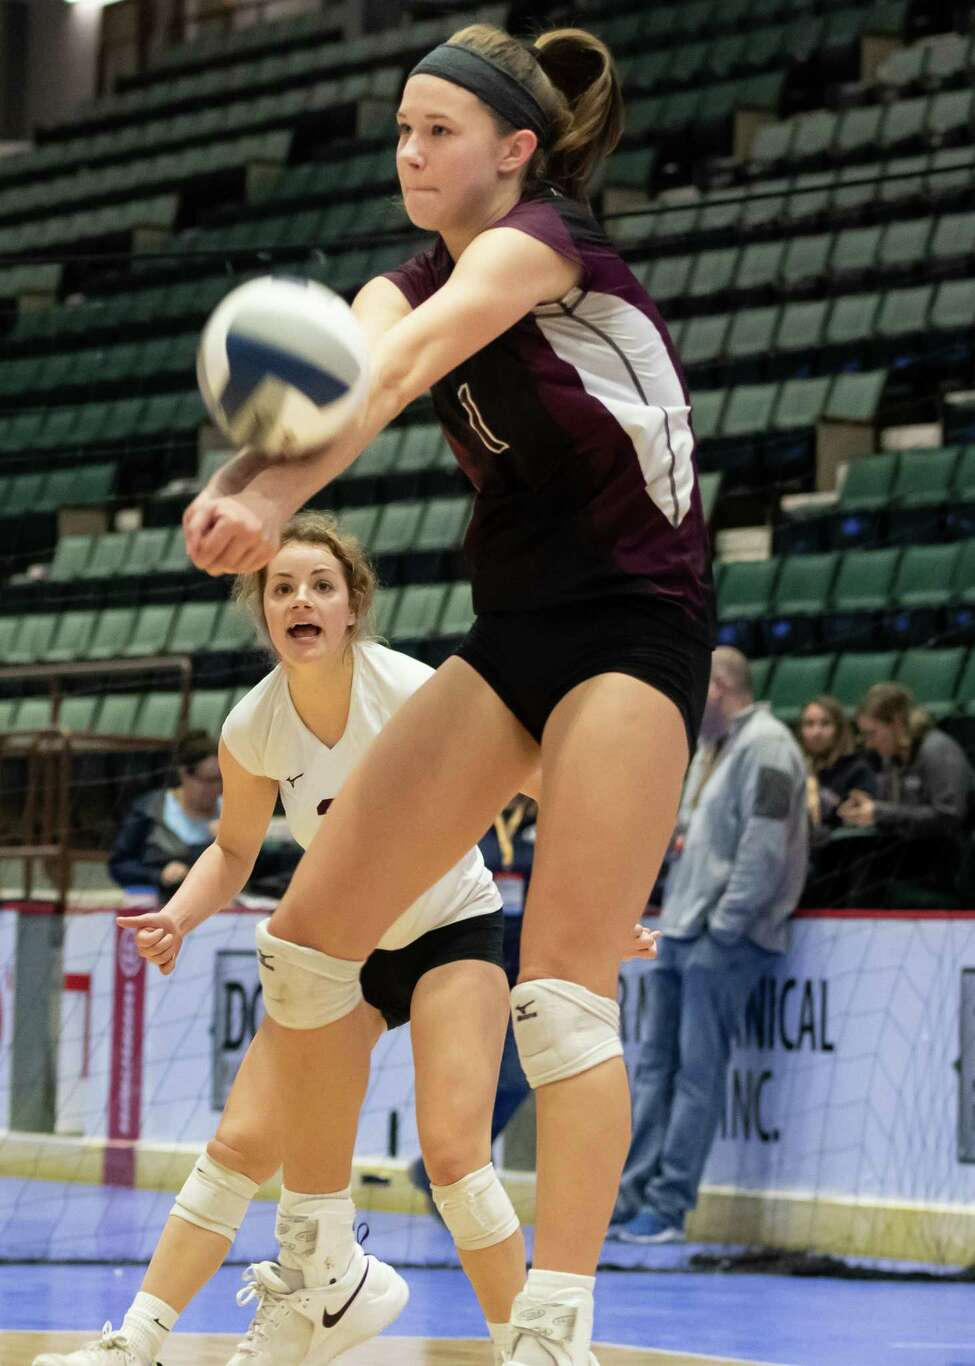 Burnt Hills's Carli Rzeszotarski bumps the ball during the Class A State Championship against West Irondequoit on Sunday, Nov. 24, 2019, at Cool Insuring Arena in Glens Falls, N.Y. (Jenn March, Special to the Times Union)